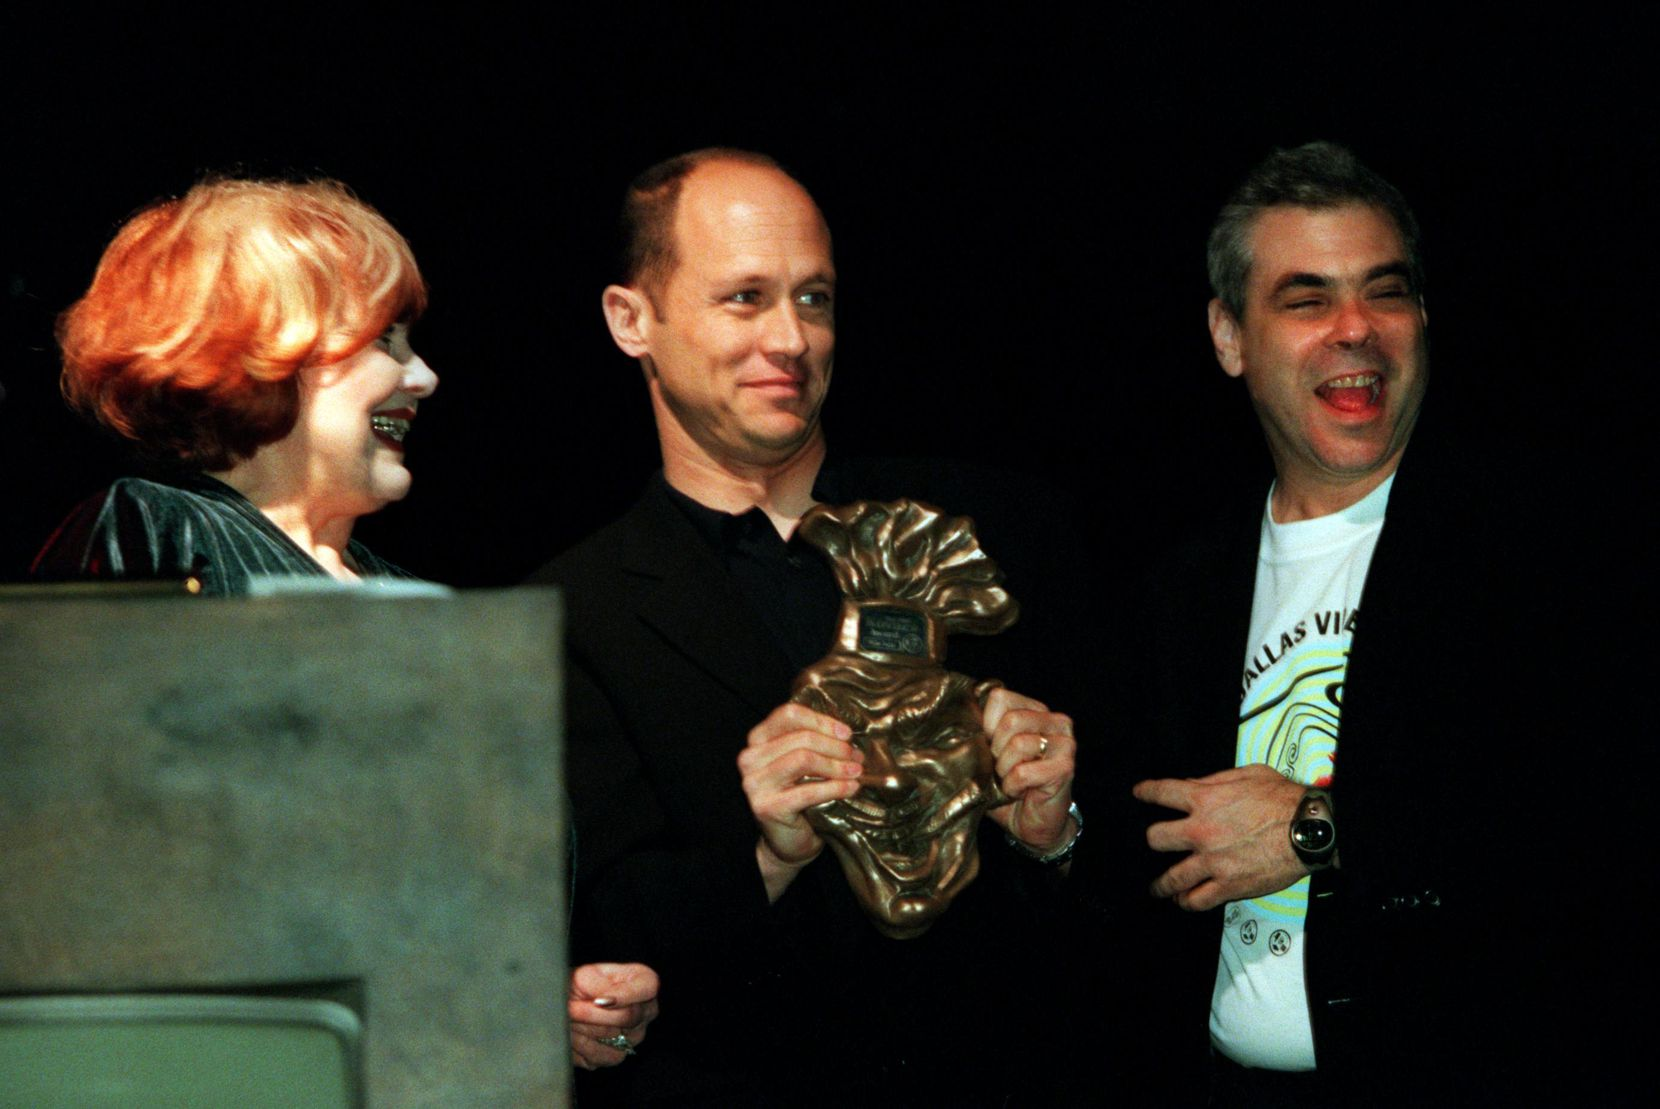 """Mike Judge  (center), creator of """"Beavis and Butt-Head,"""" """"King of the Hill"""" and """"Office Space,"""" receiving the Ernie Kovacs Award from Edie Adams, Kovacs' widow, and Dallas Video Festival director Bart Weiss at the 14th annual festival."""